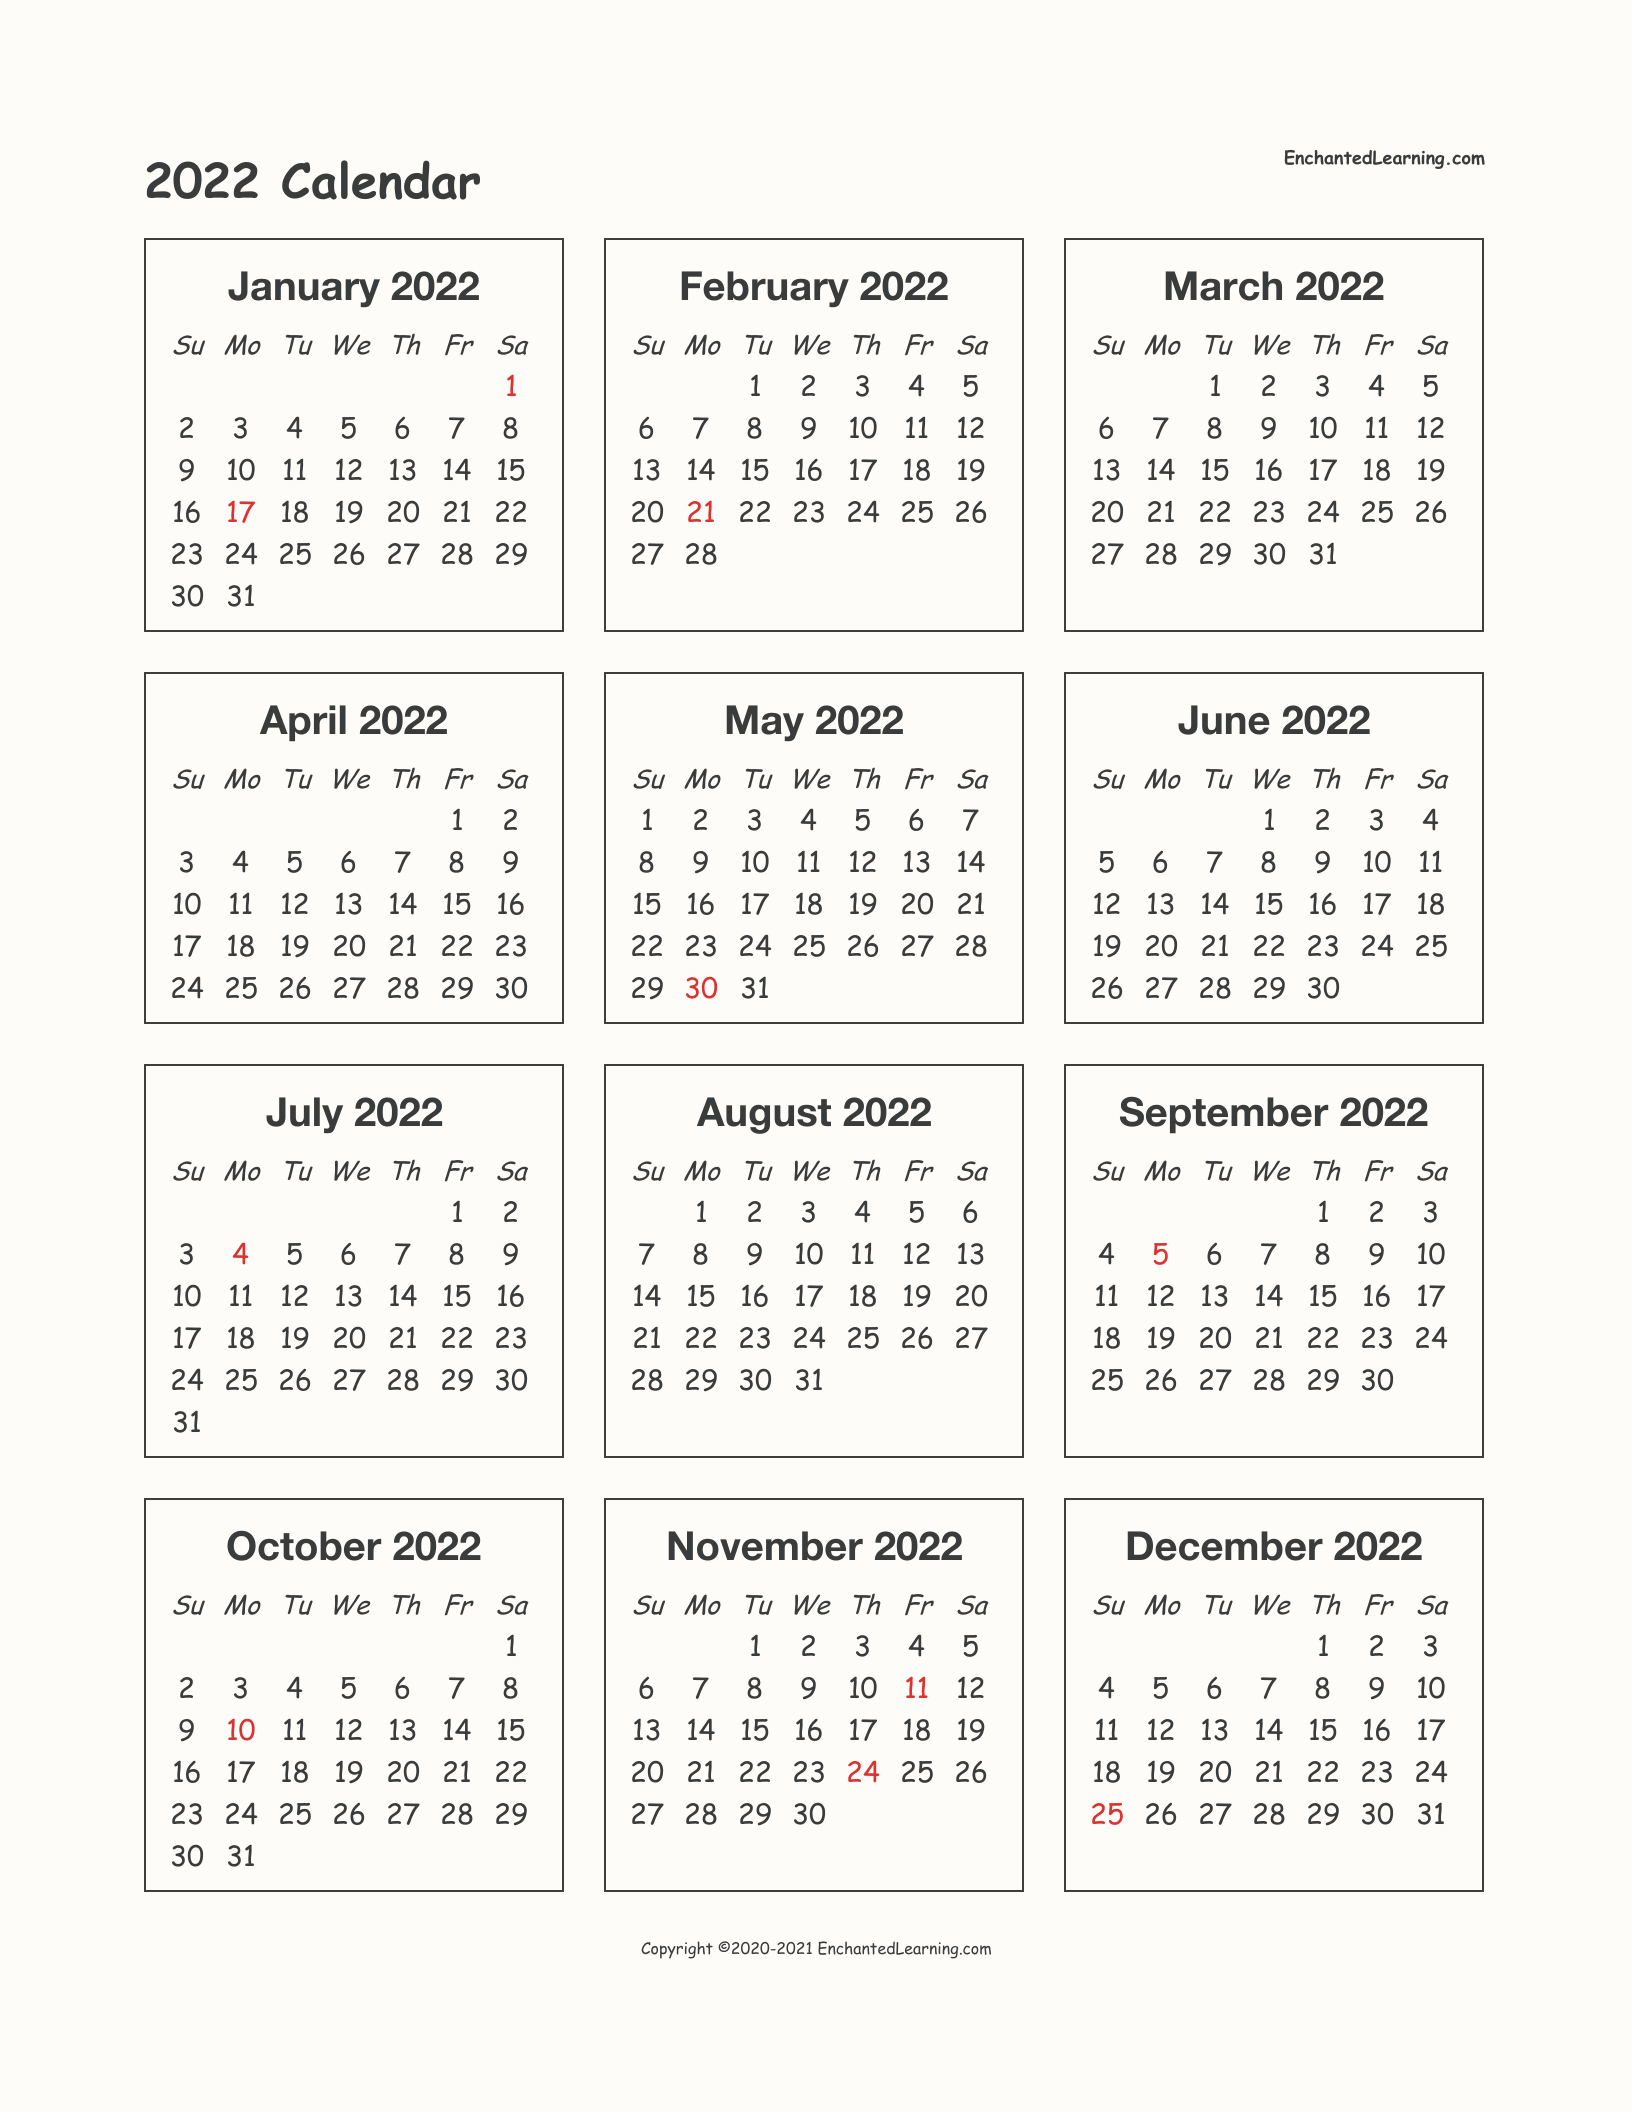 2022 One-Page Calendar - Enchanted Learning